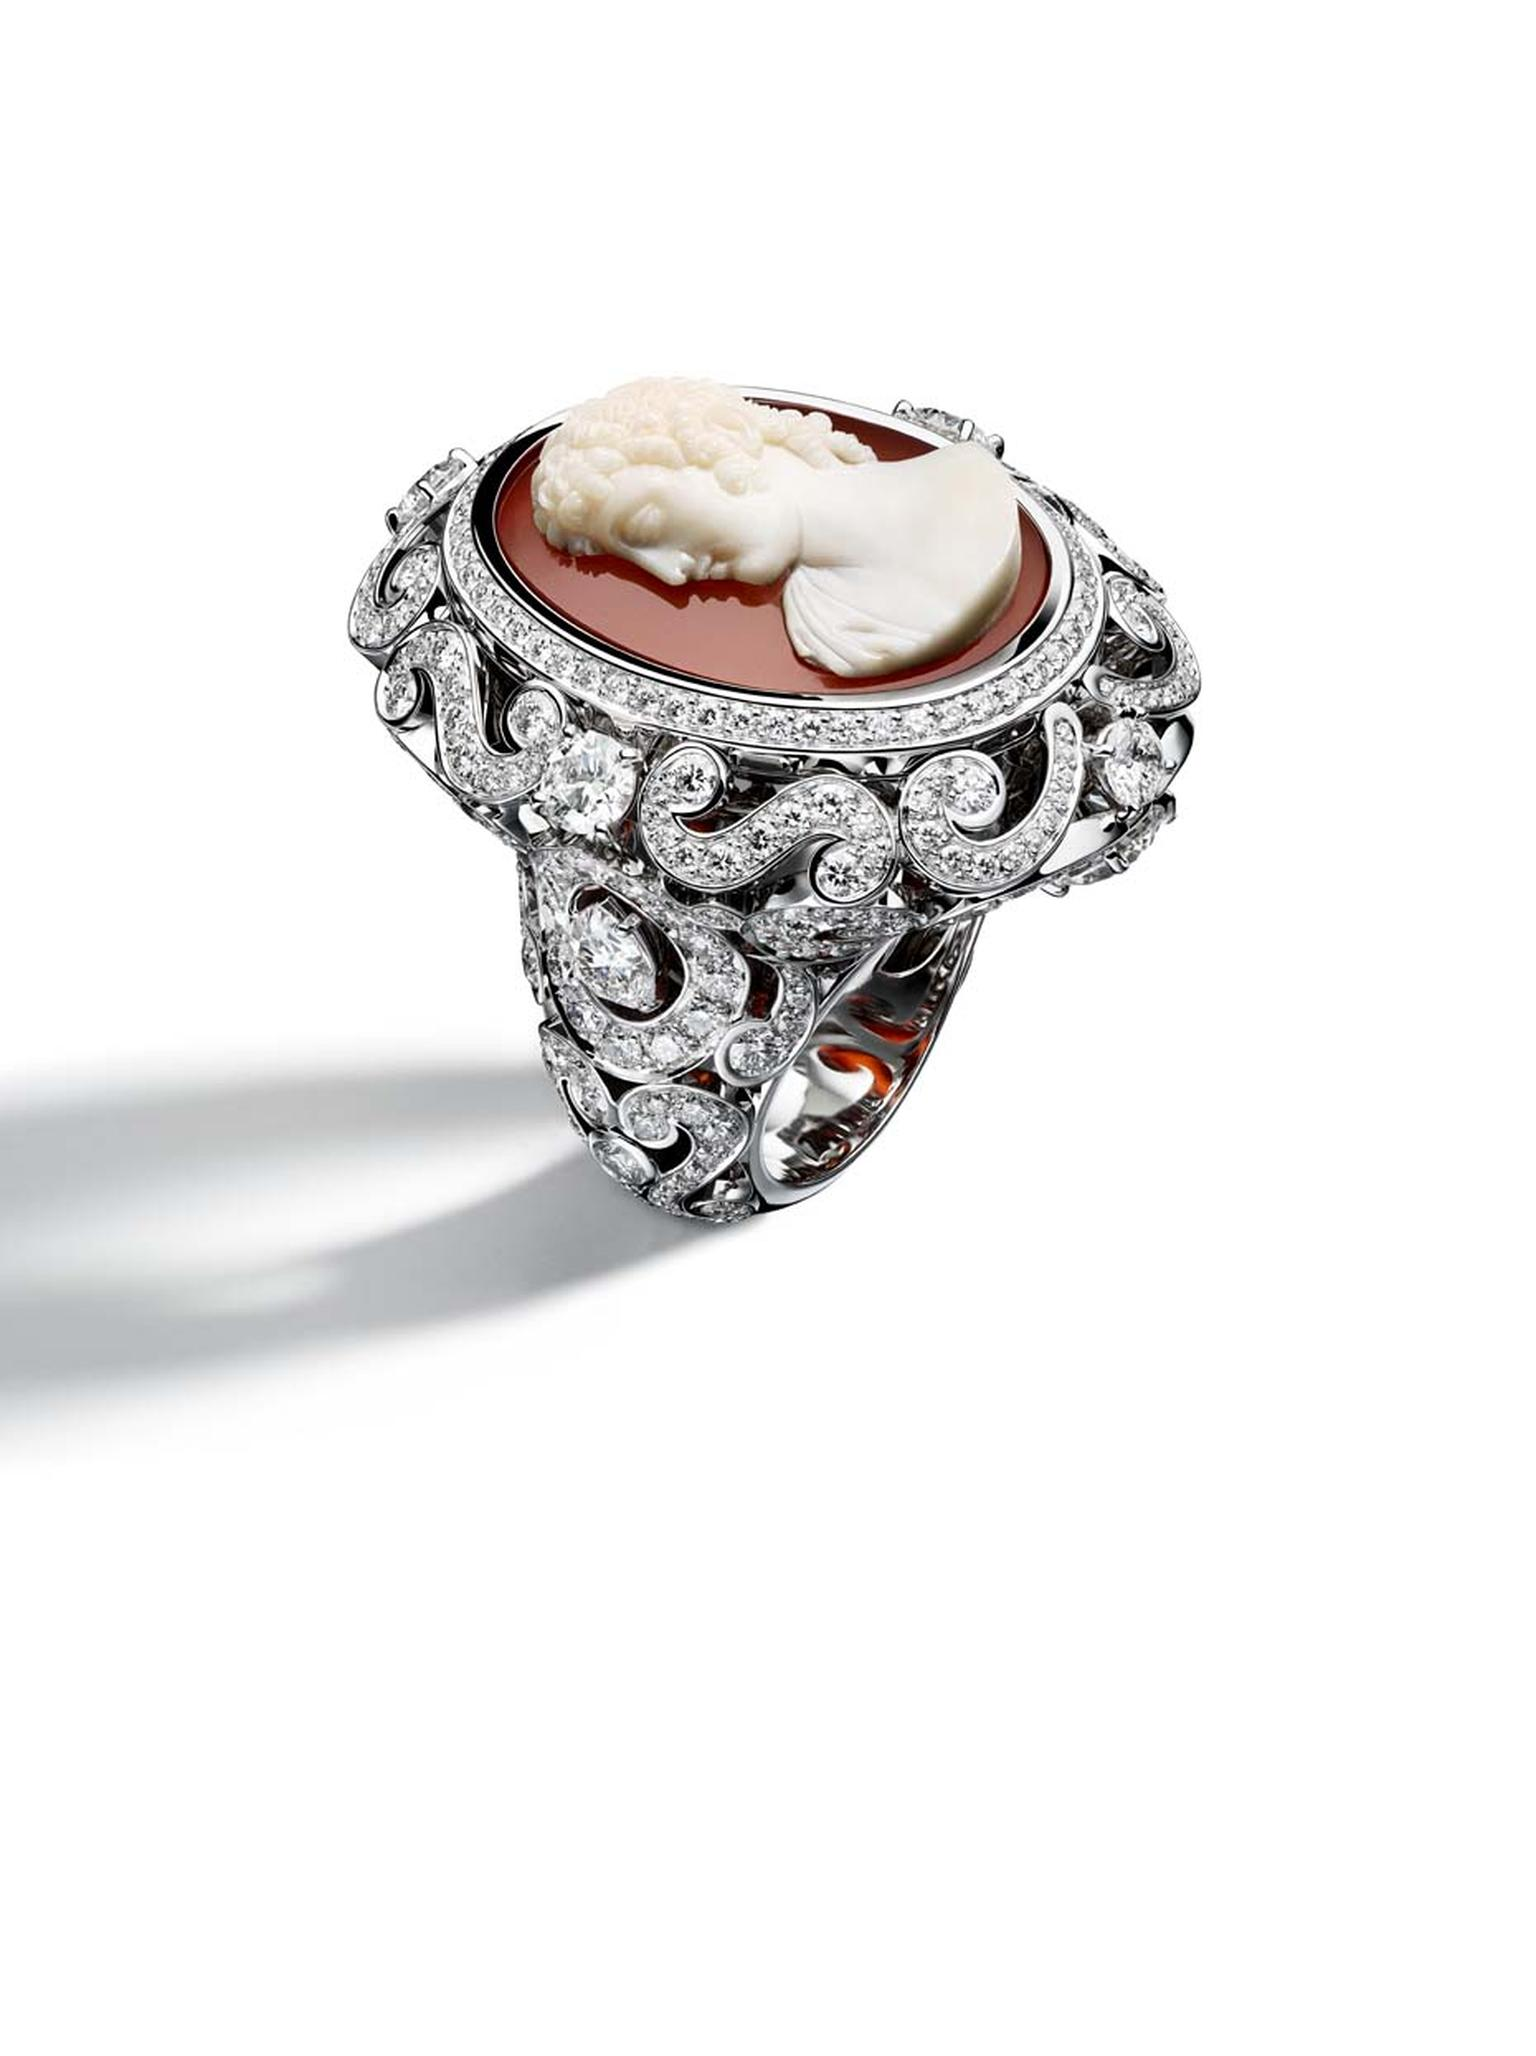 Giampiero Bodino Cameo ring in white gold featuring a chalcedony cameo and diamonds. Image by: Laziz Hamani